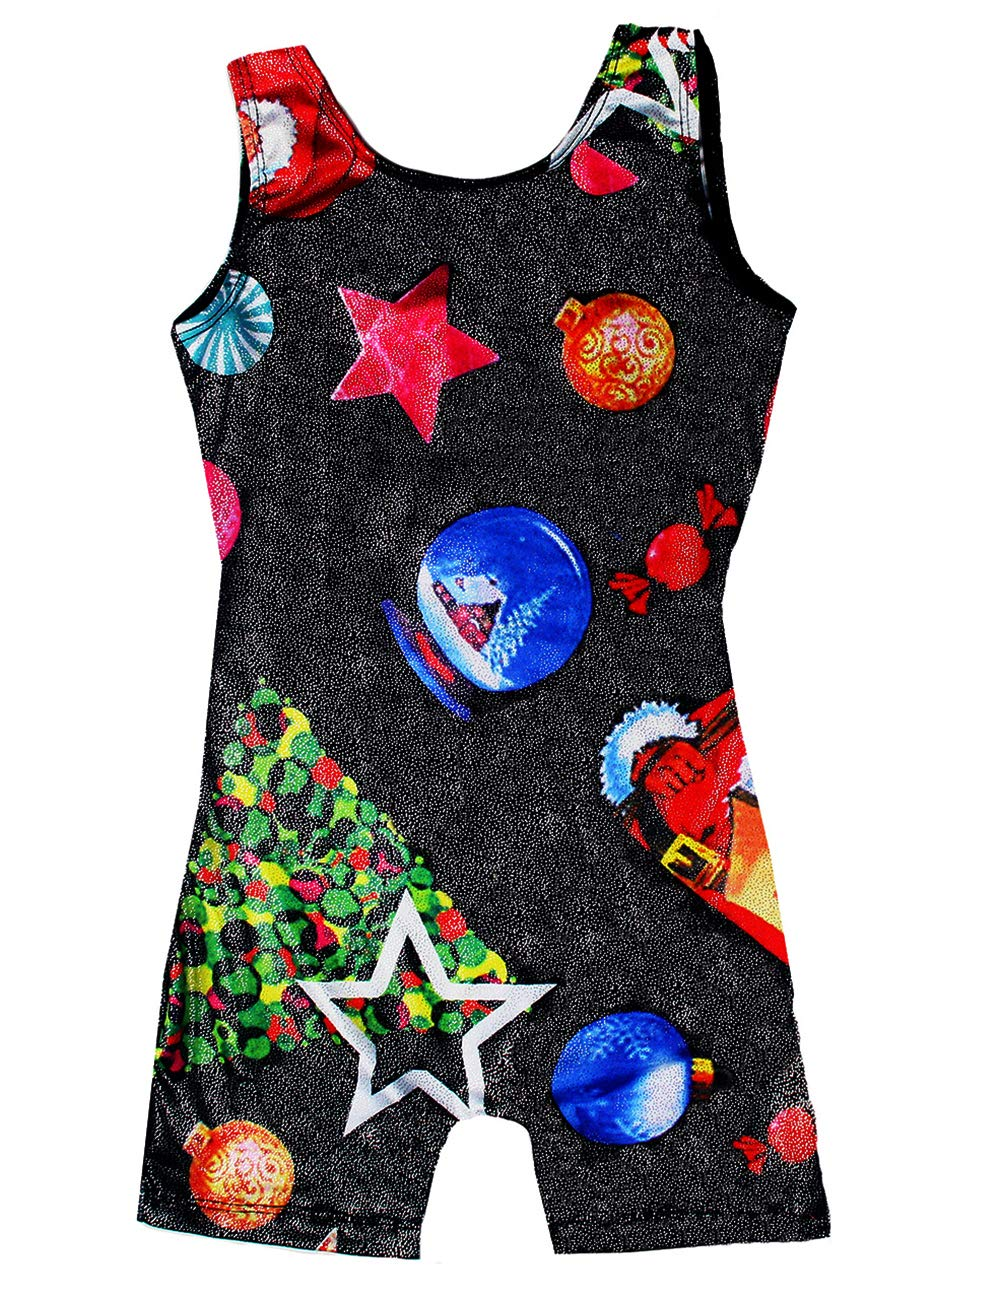 Midout One-Piece Gymnastic Leotards for Toddler Girls 2t 3t 4t Sparkly Christmas Kids Toddler Biketard Unitard with Short Black